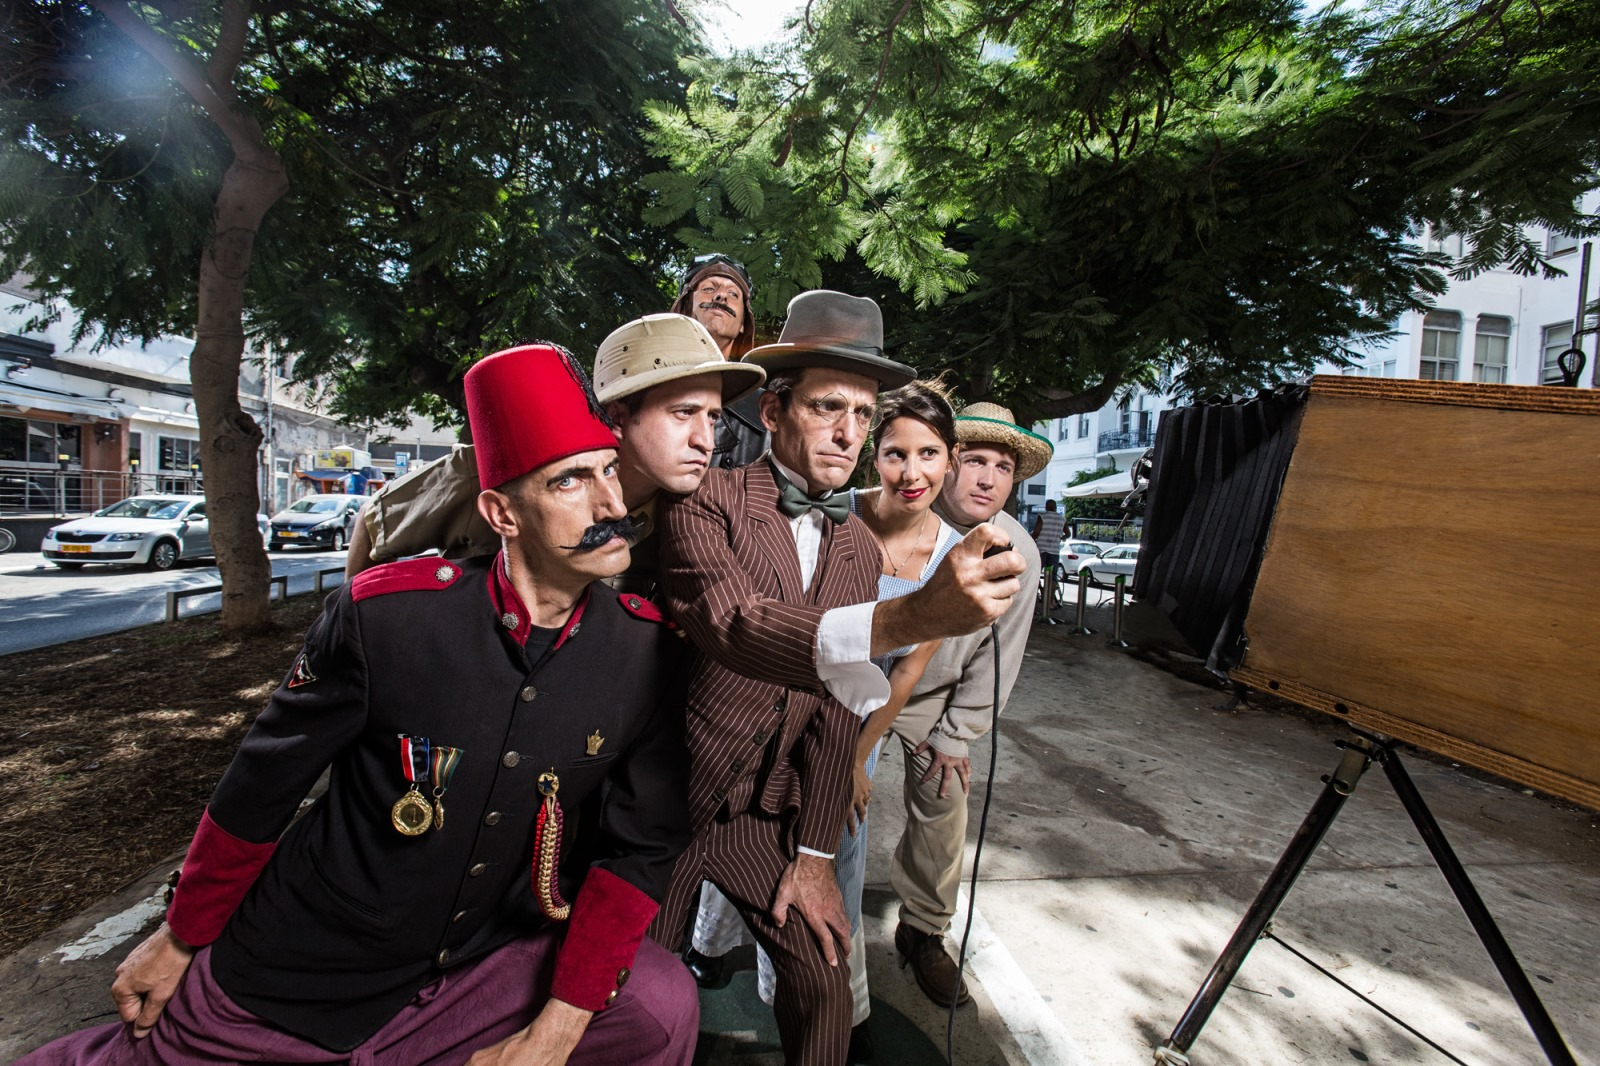 Tarbush Actor Tours take a humorous look at Tel Aviv history. Photo: courtesy